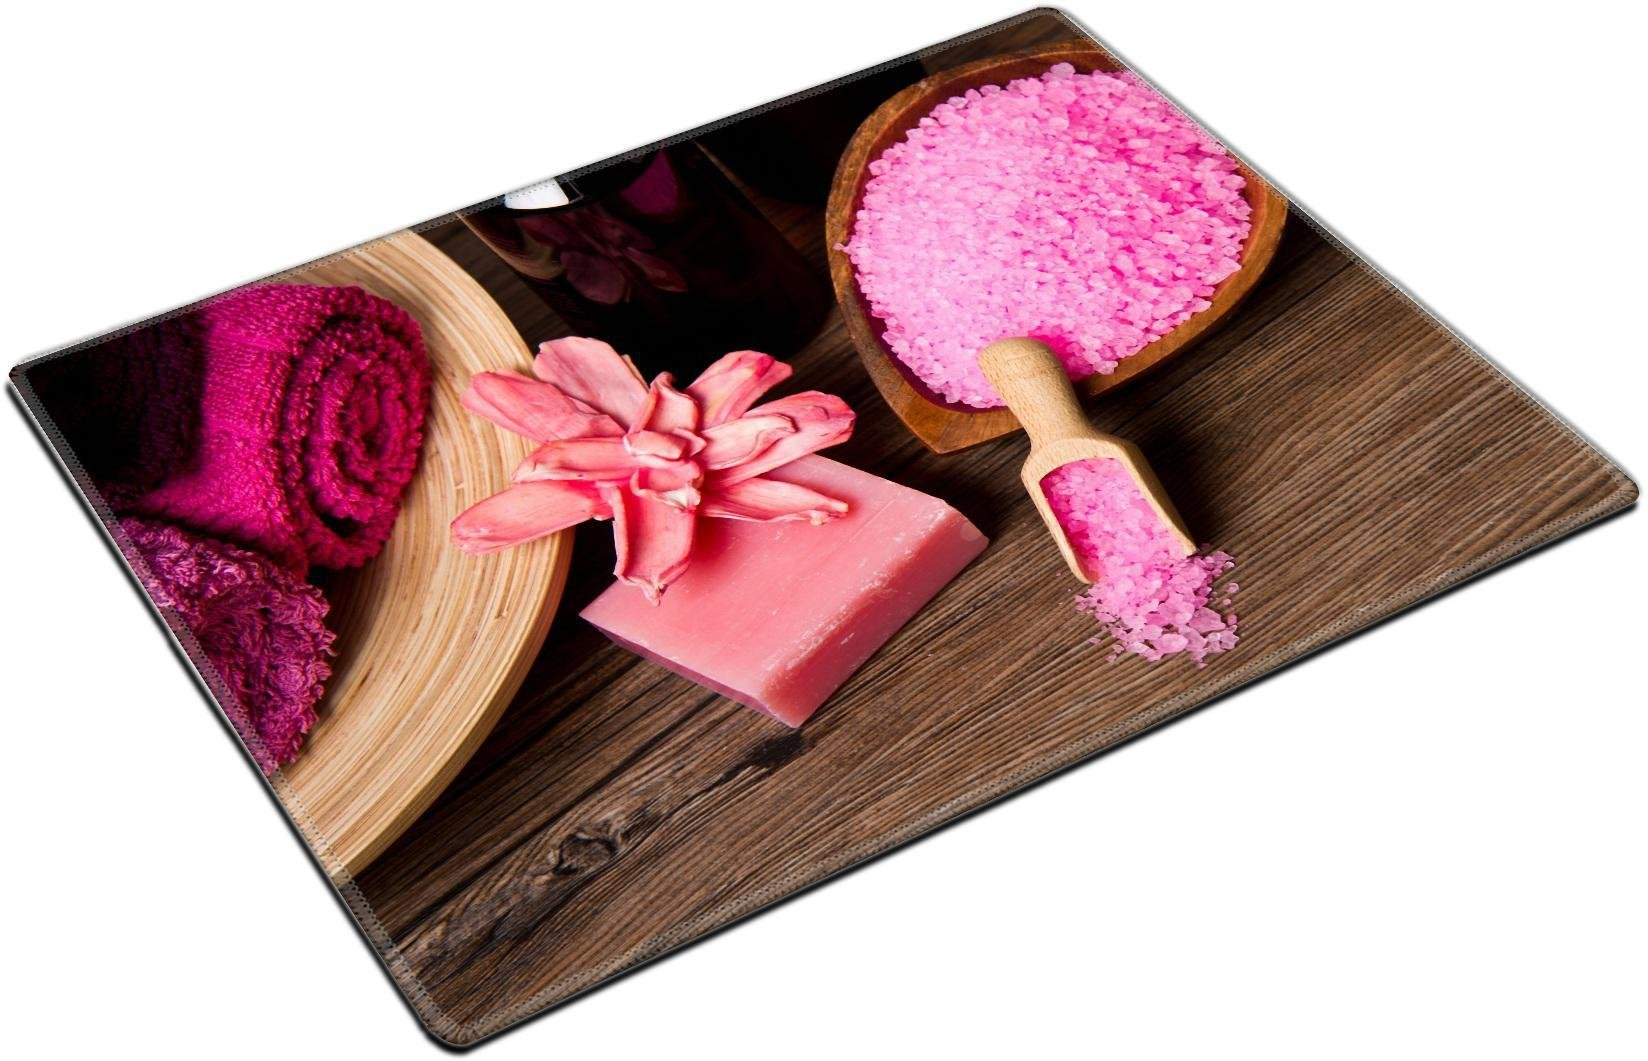 MSD Placemat Non-Slip Natural Rubber Desk Pads Place-mats Design 23908738 Pink Spa Tools with Candle AMD Towel on Wood by MSD (Image #1)